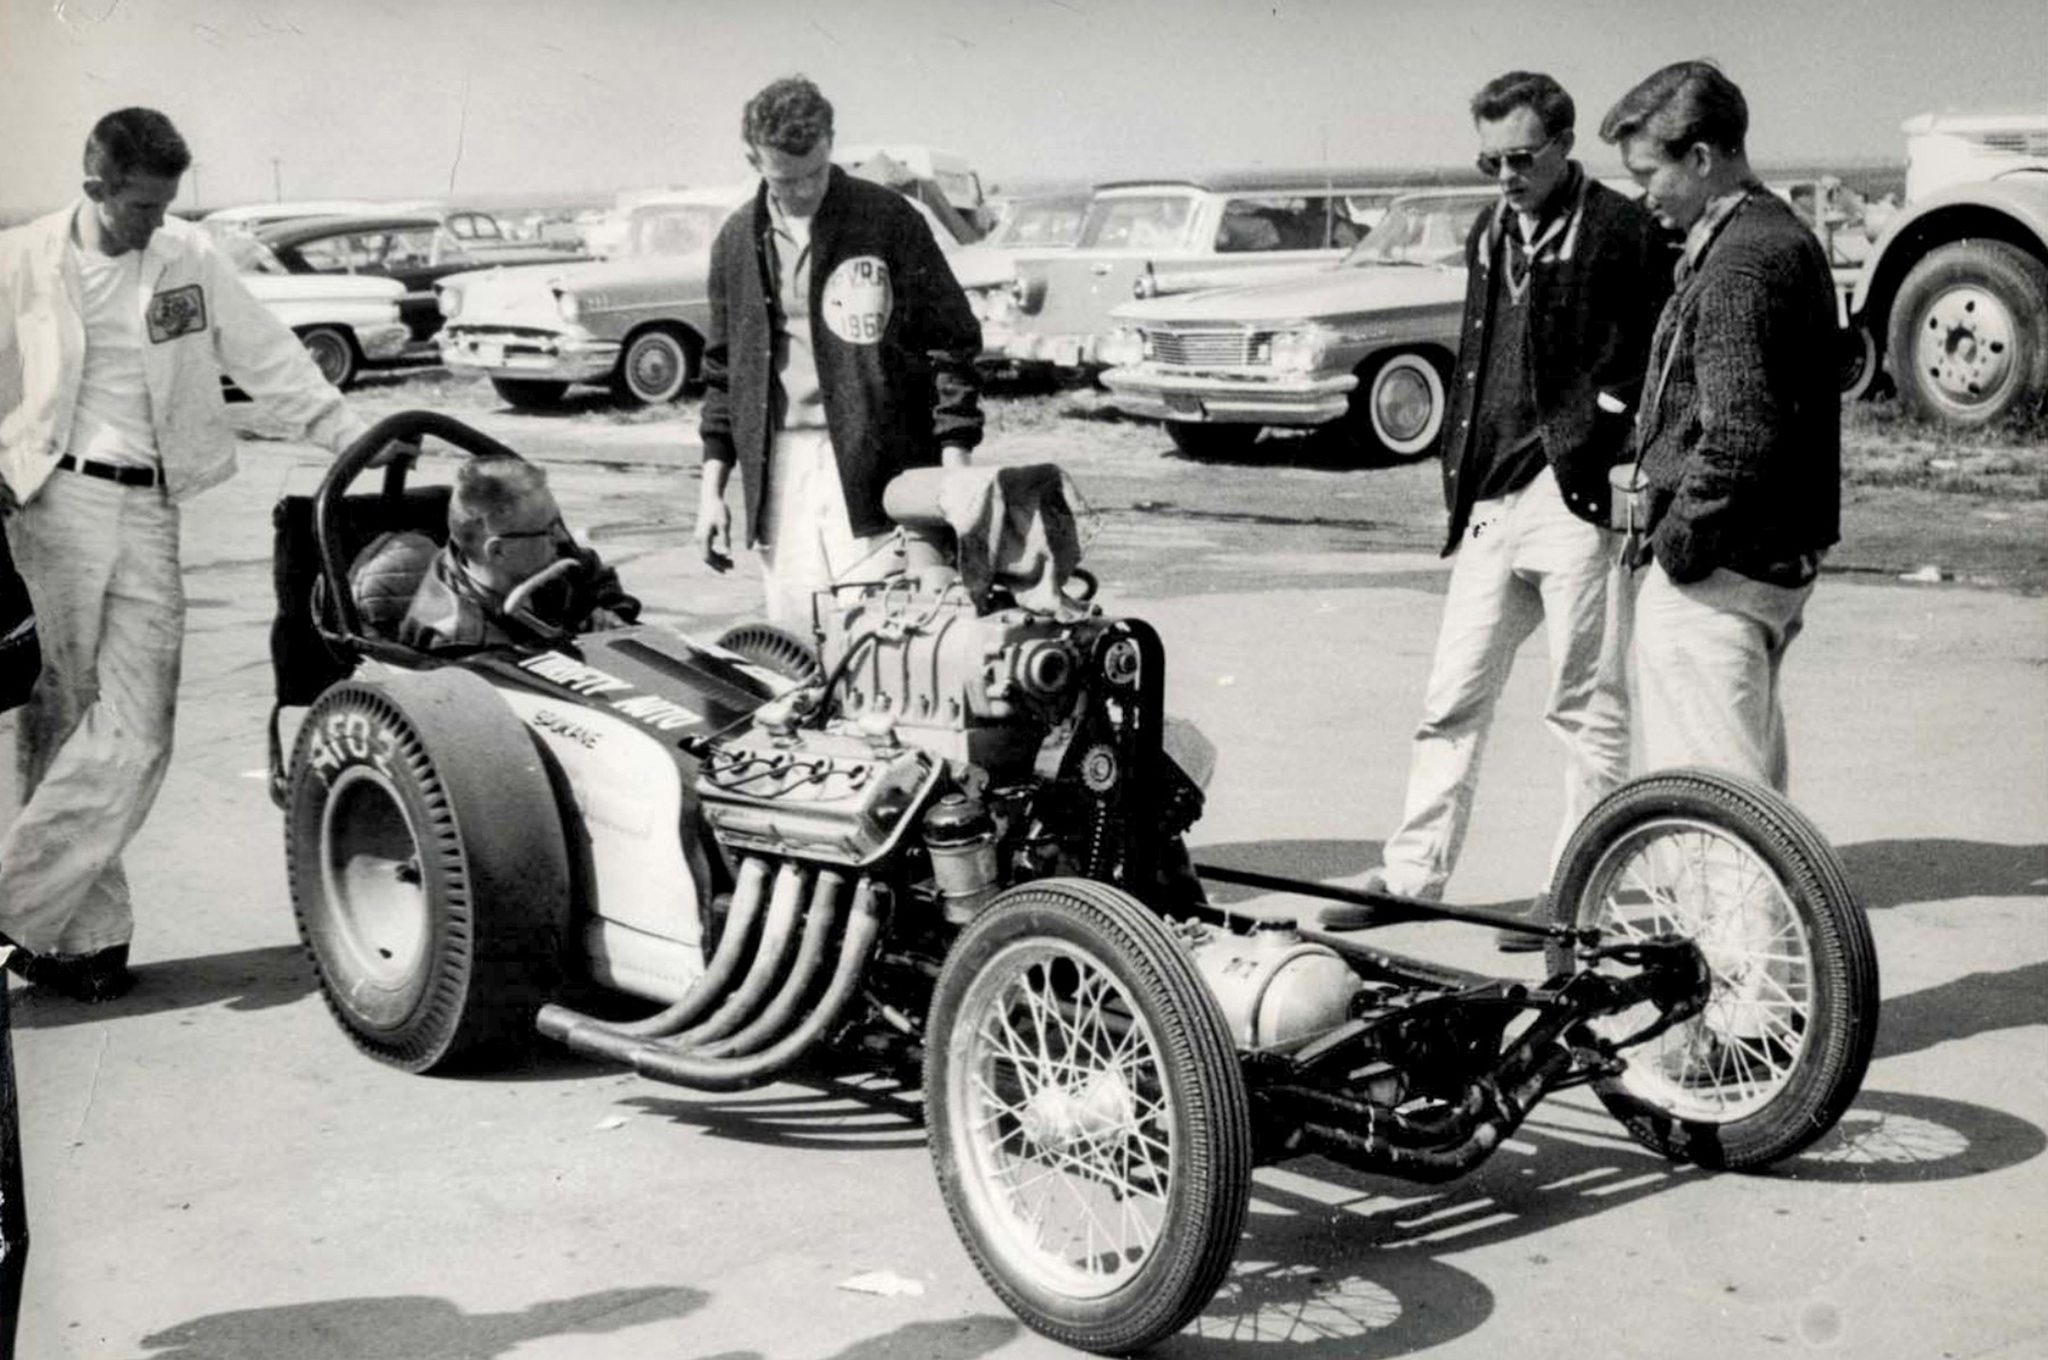 Here's another photo from the March Meet. By then the crew went high-tech with a lead-filled tube bolted to the front axle. Stortroen is apparently doing something under the cowl, perhaps fiddling with a bottle valve? Leaning on the rollbar is belly-tank pilot Charlie Markley. That's Lew Shaw immediately to Don's right.